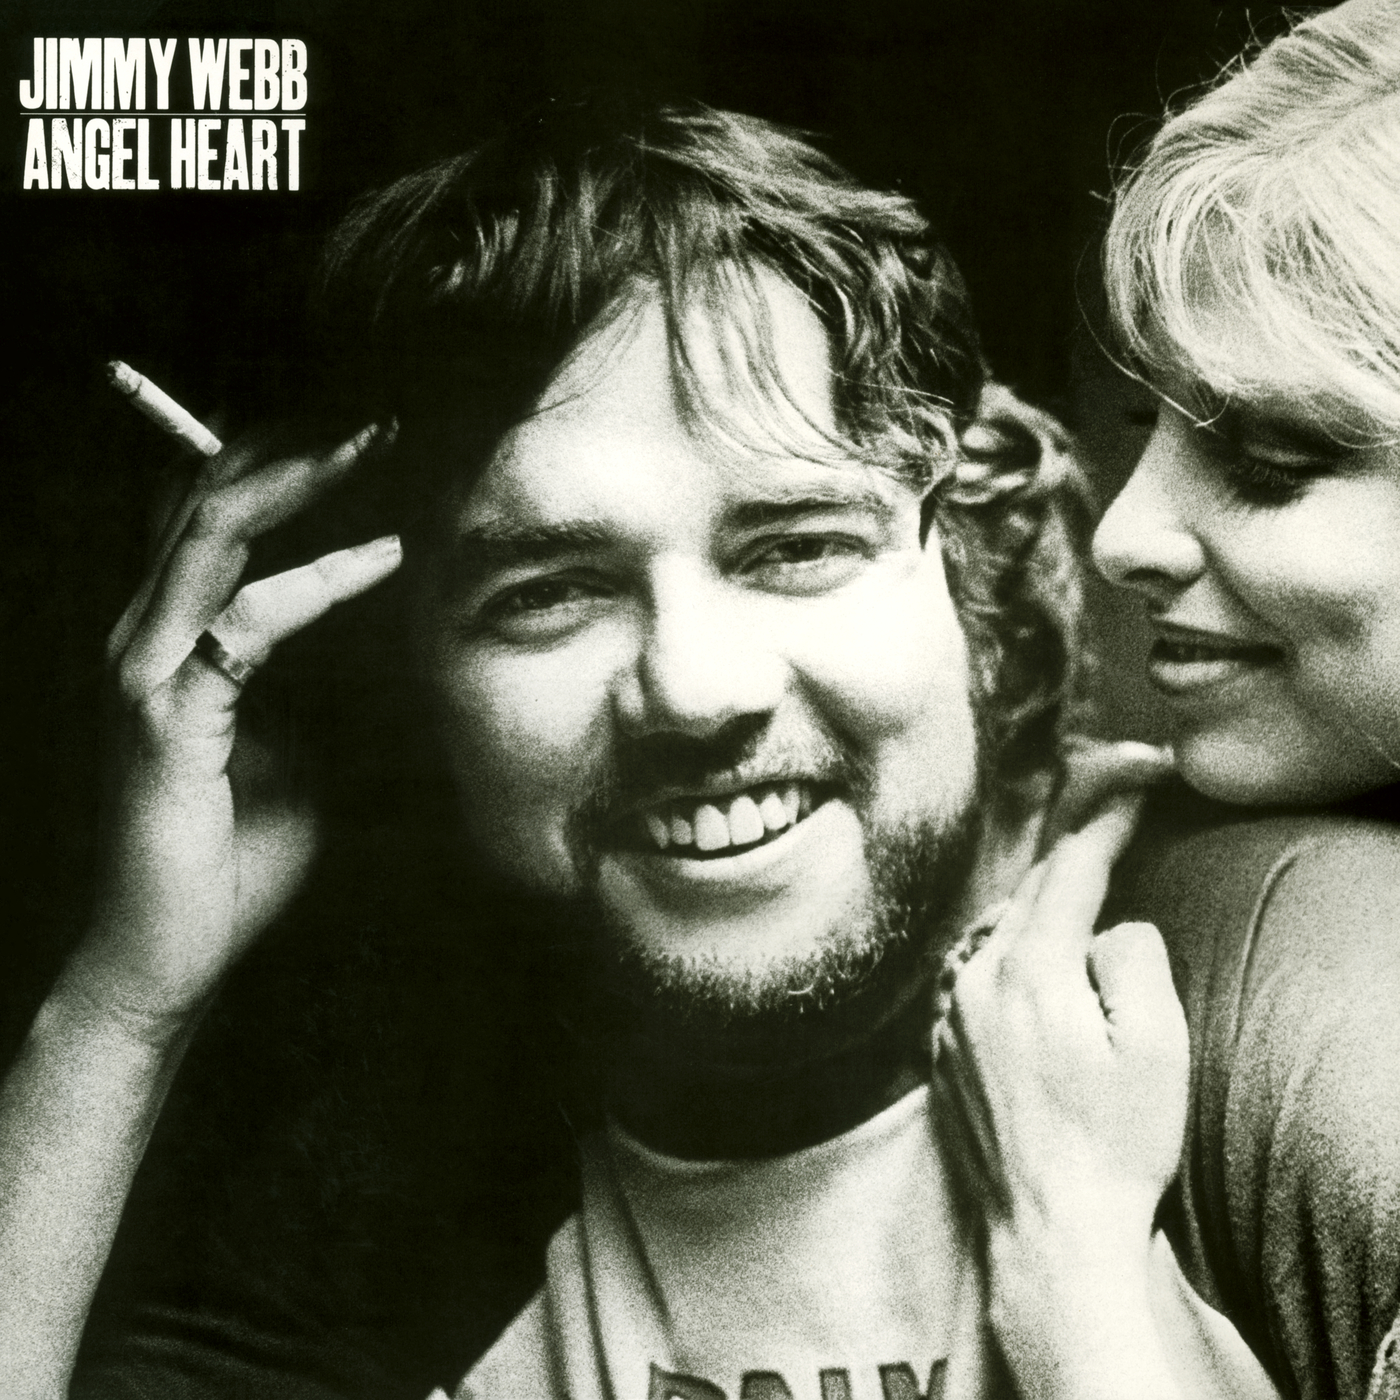 Angel Heart - Jimmy Webb